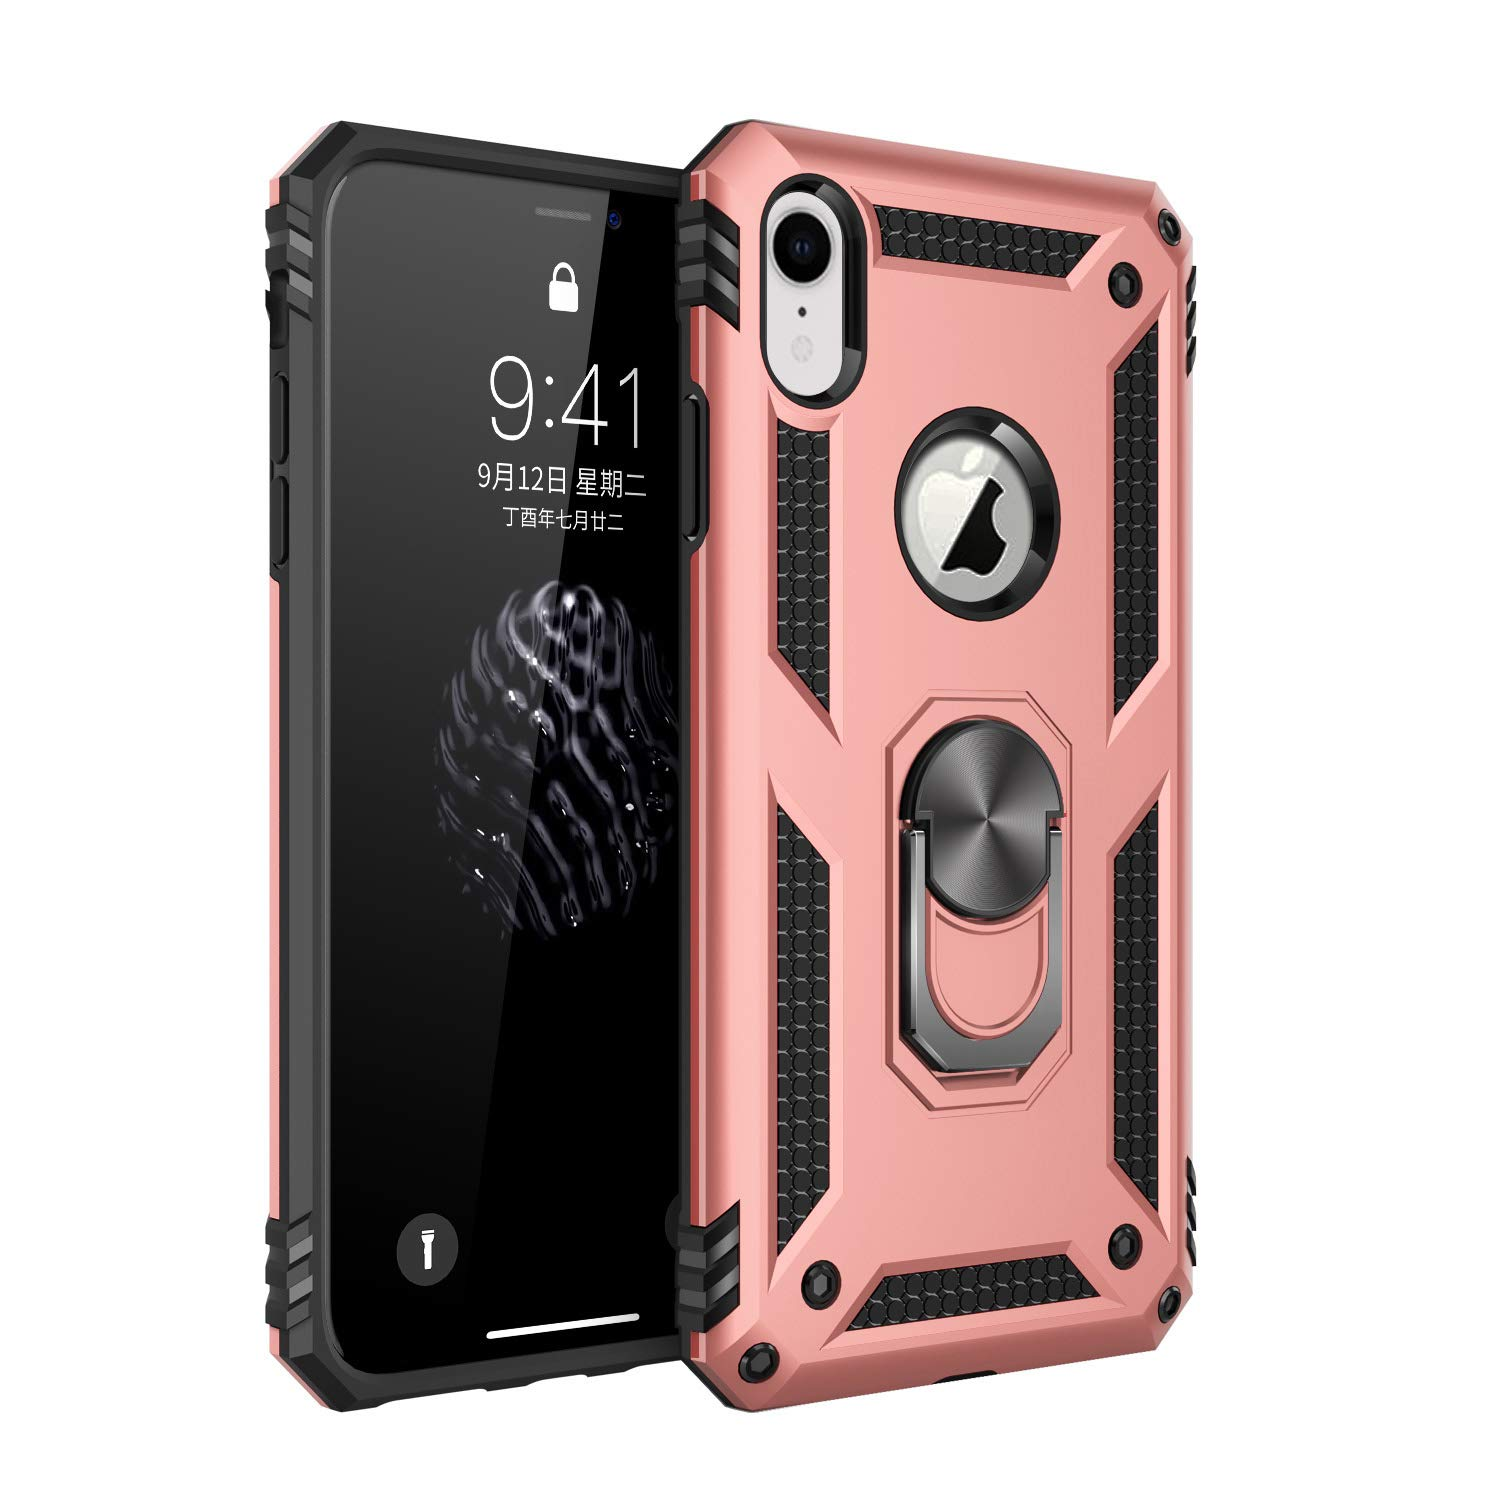 Military Grade Drop Impact for iPhone XR Case 360 Metal Rotating Ring Kickstand Holder Built-in Magnetic Car Mount Armor Heavy Duty Shockproof Cover for iPhone XR Phone Protection Case (Rose Gold) by Dishibei